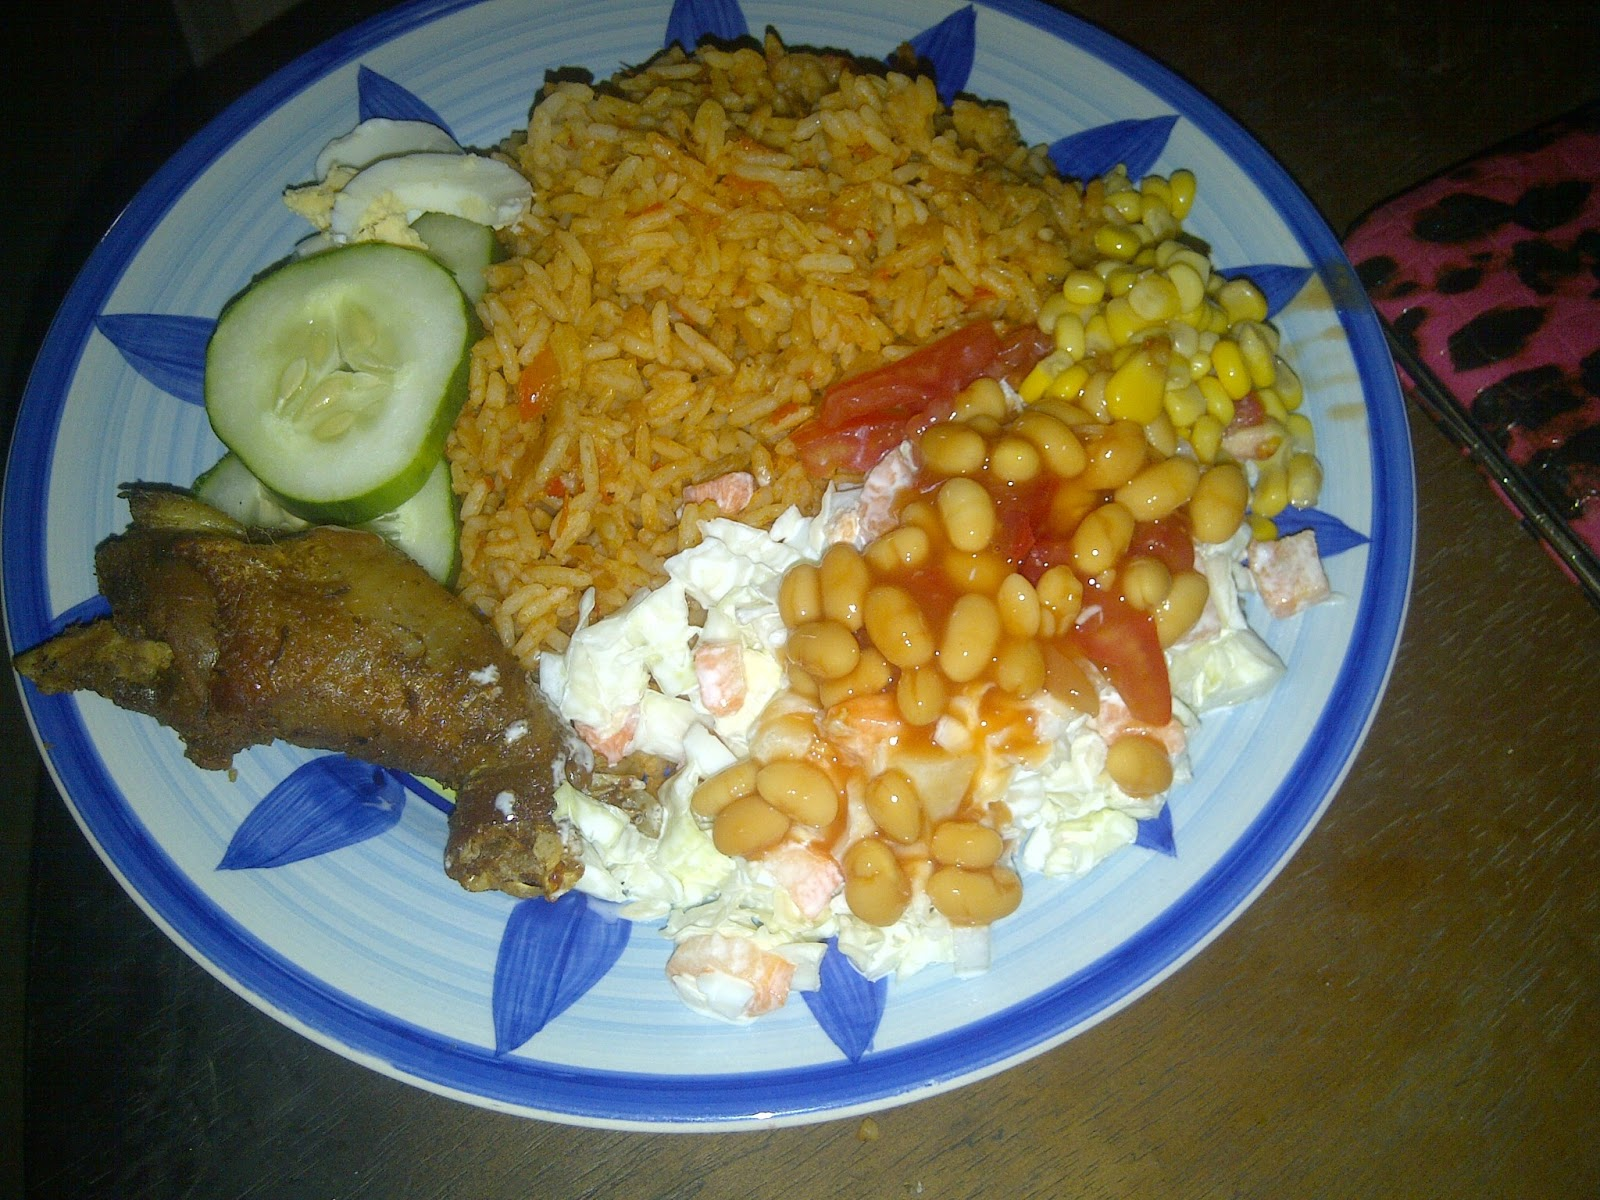 Dobbys signature nigerian food blog i nigerian food recipes i jollof rice and chicken garnished with coleslaw cucumber baked beans sweet corn and boiled egg by cynthia emenife ccuart Choice Image